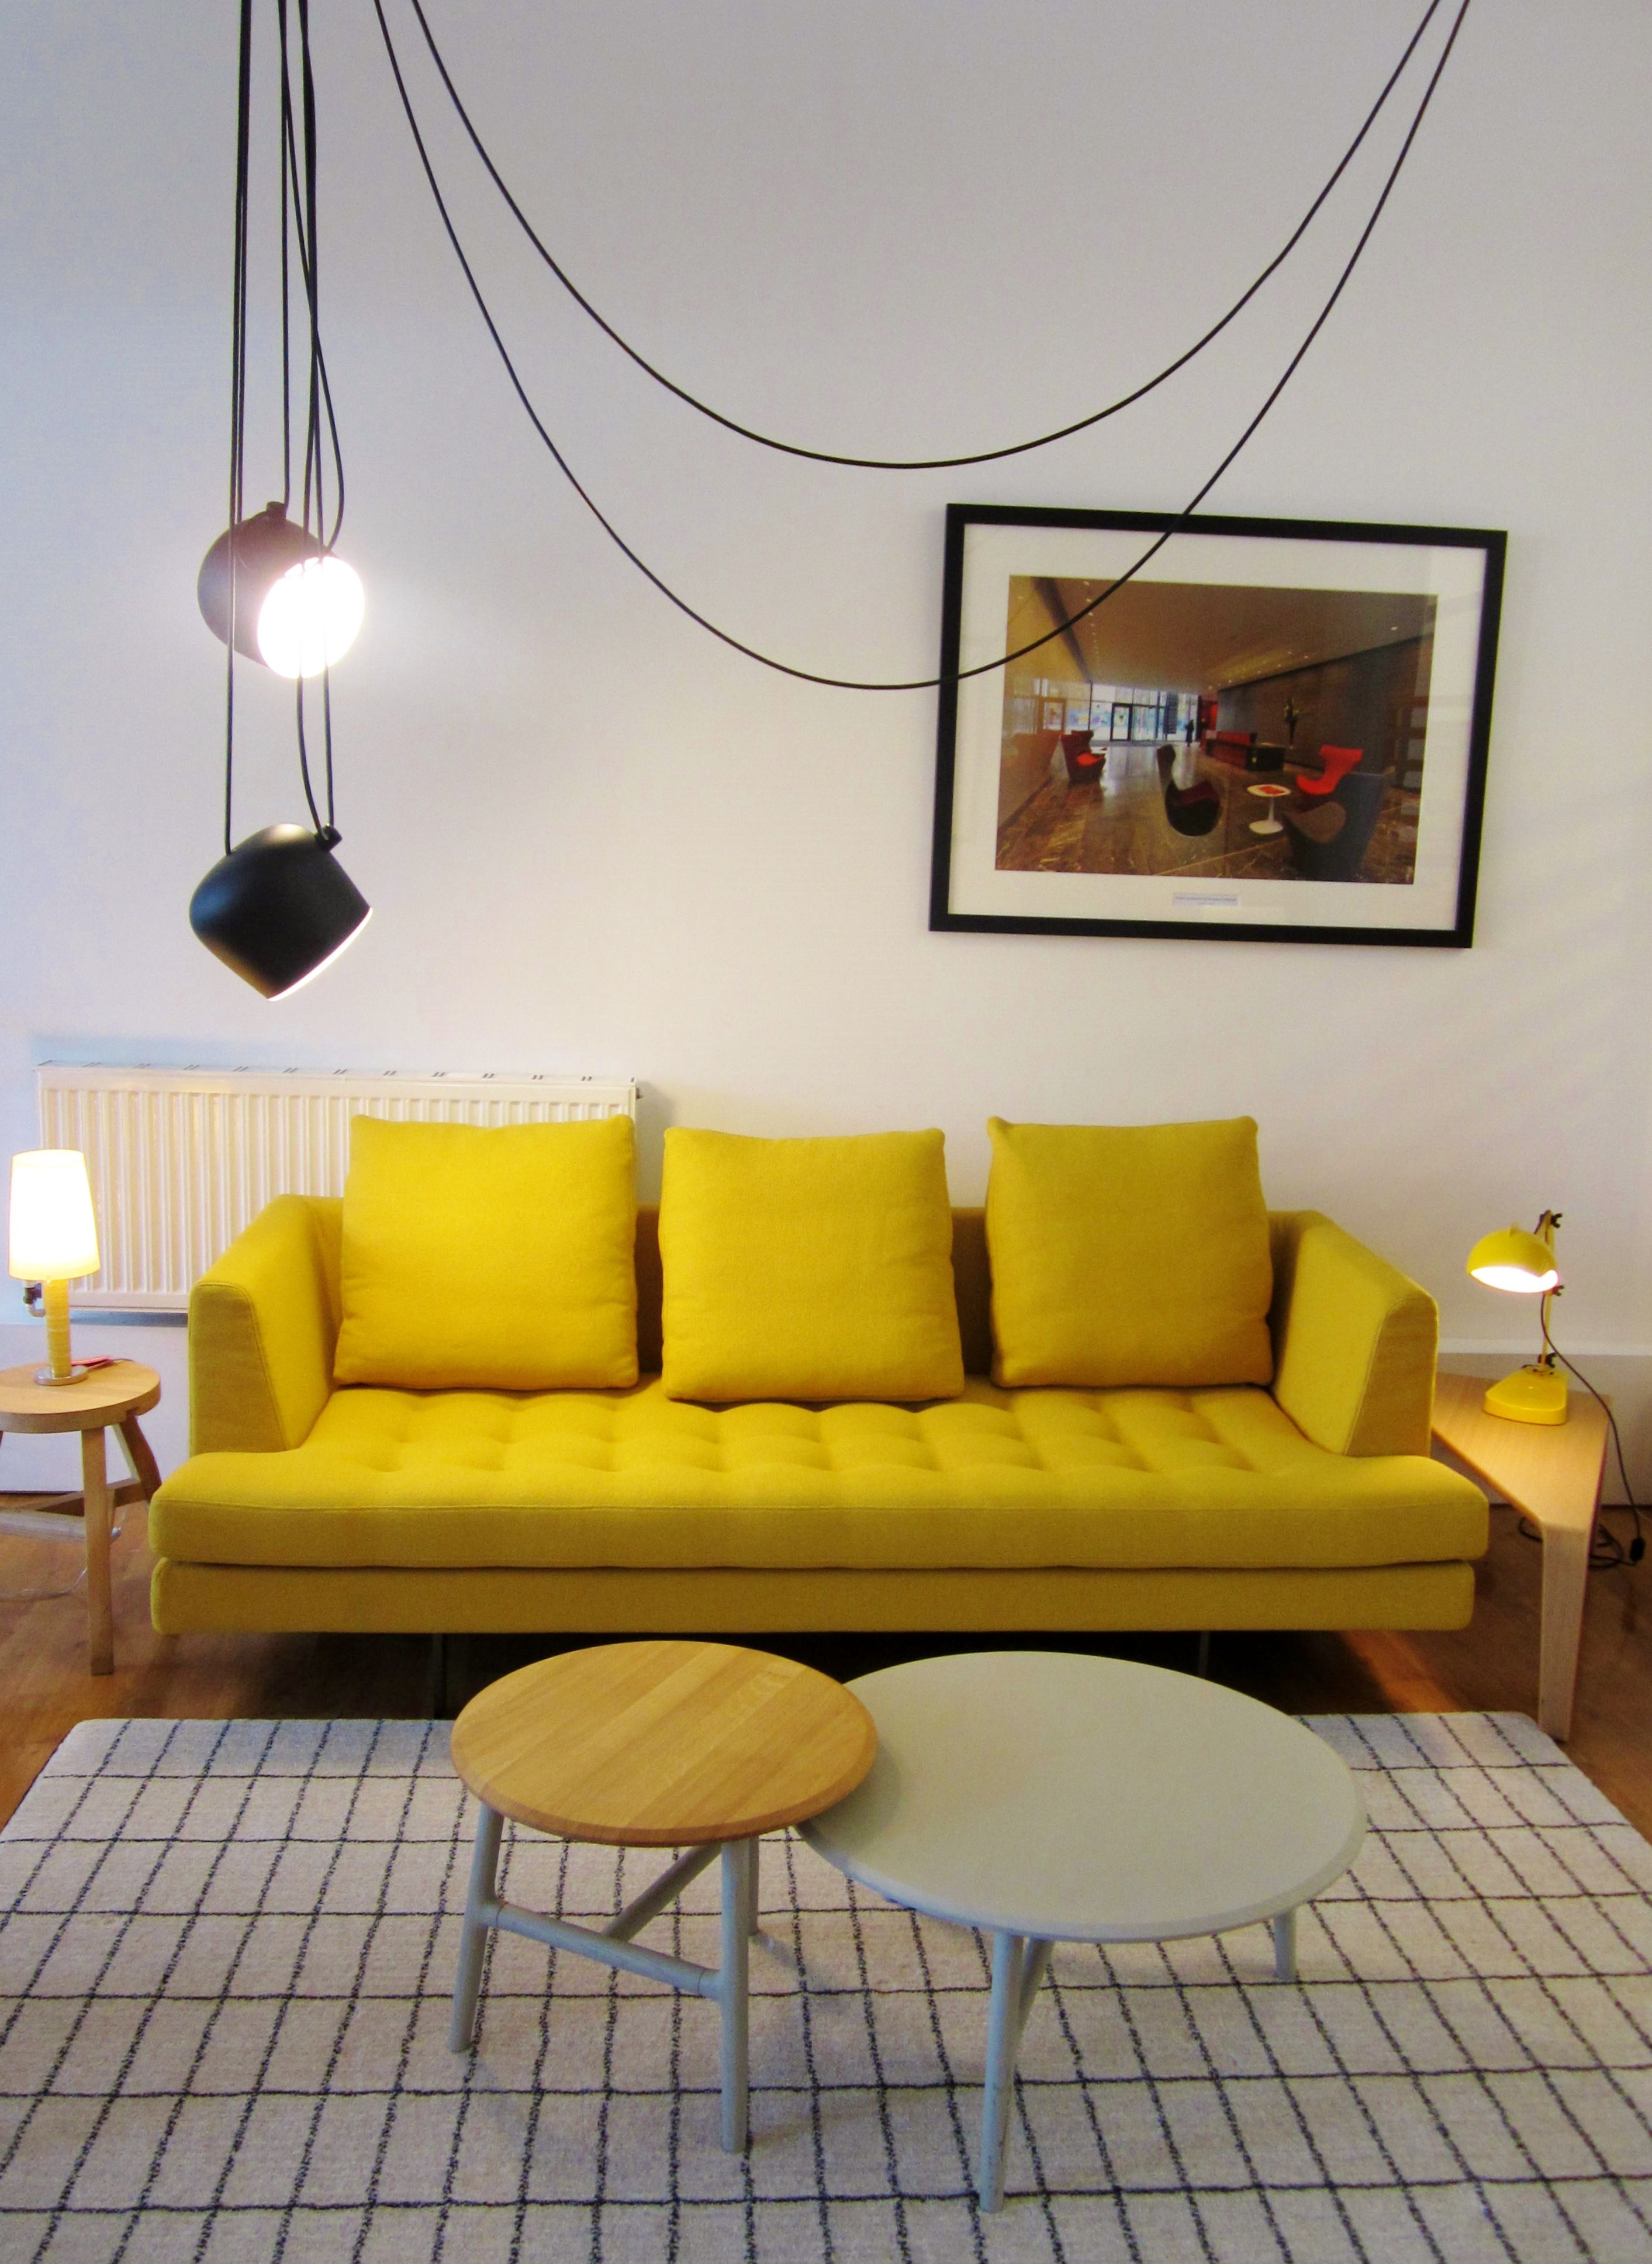 Edward sofa from Bensen with Aim lights from Flos and Nudo side tables from Sancal